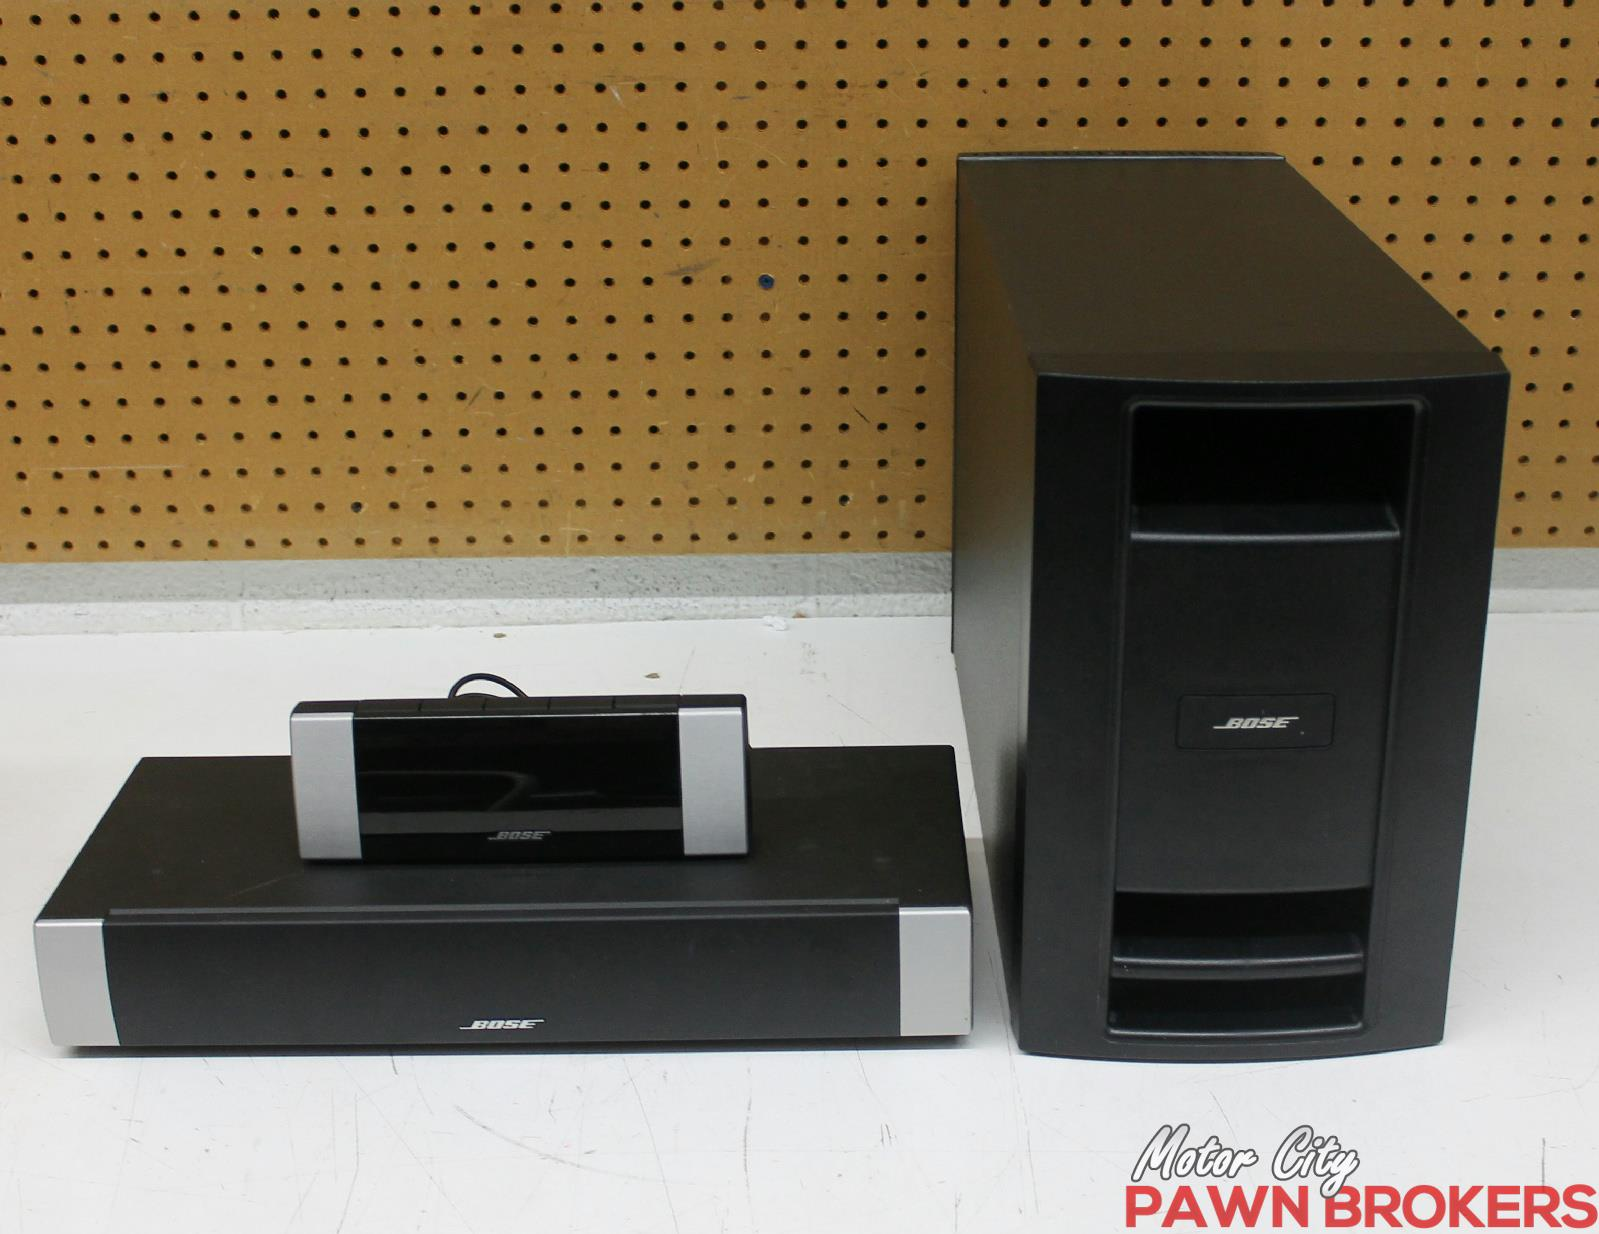 bose mc1 media center surround sound ps28 iii. Black Bedroom Furniture Sets. Home Design Ideas